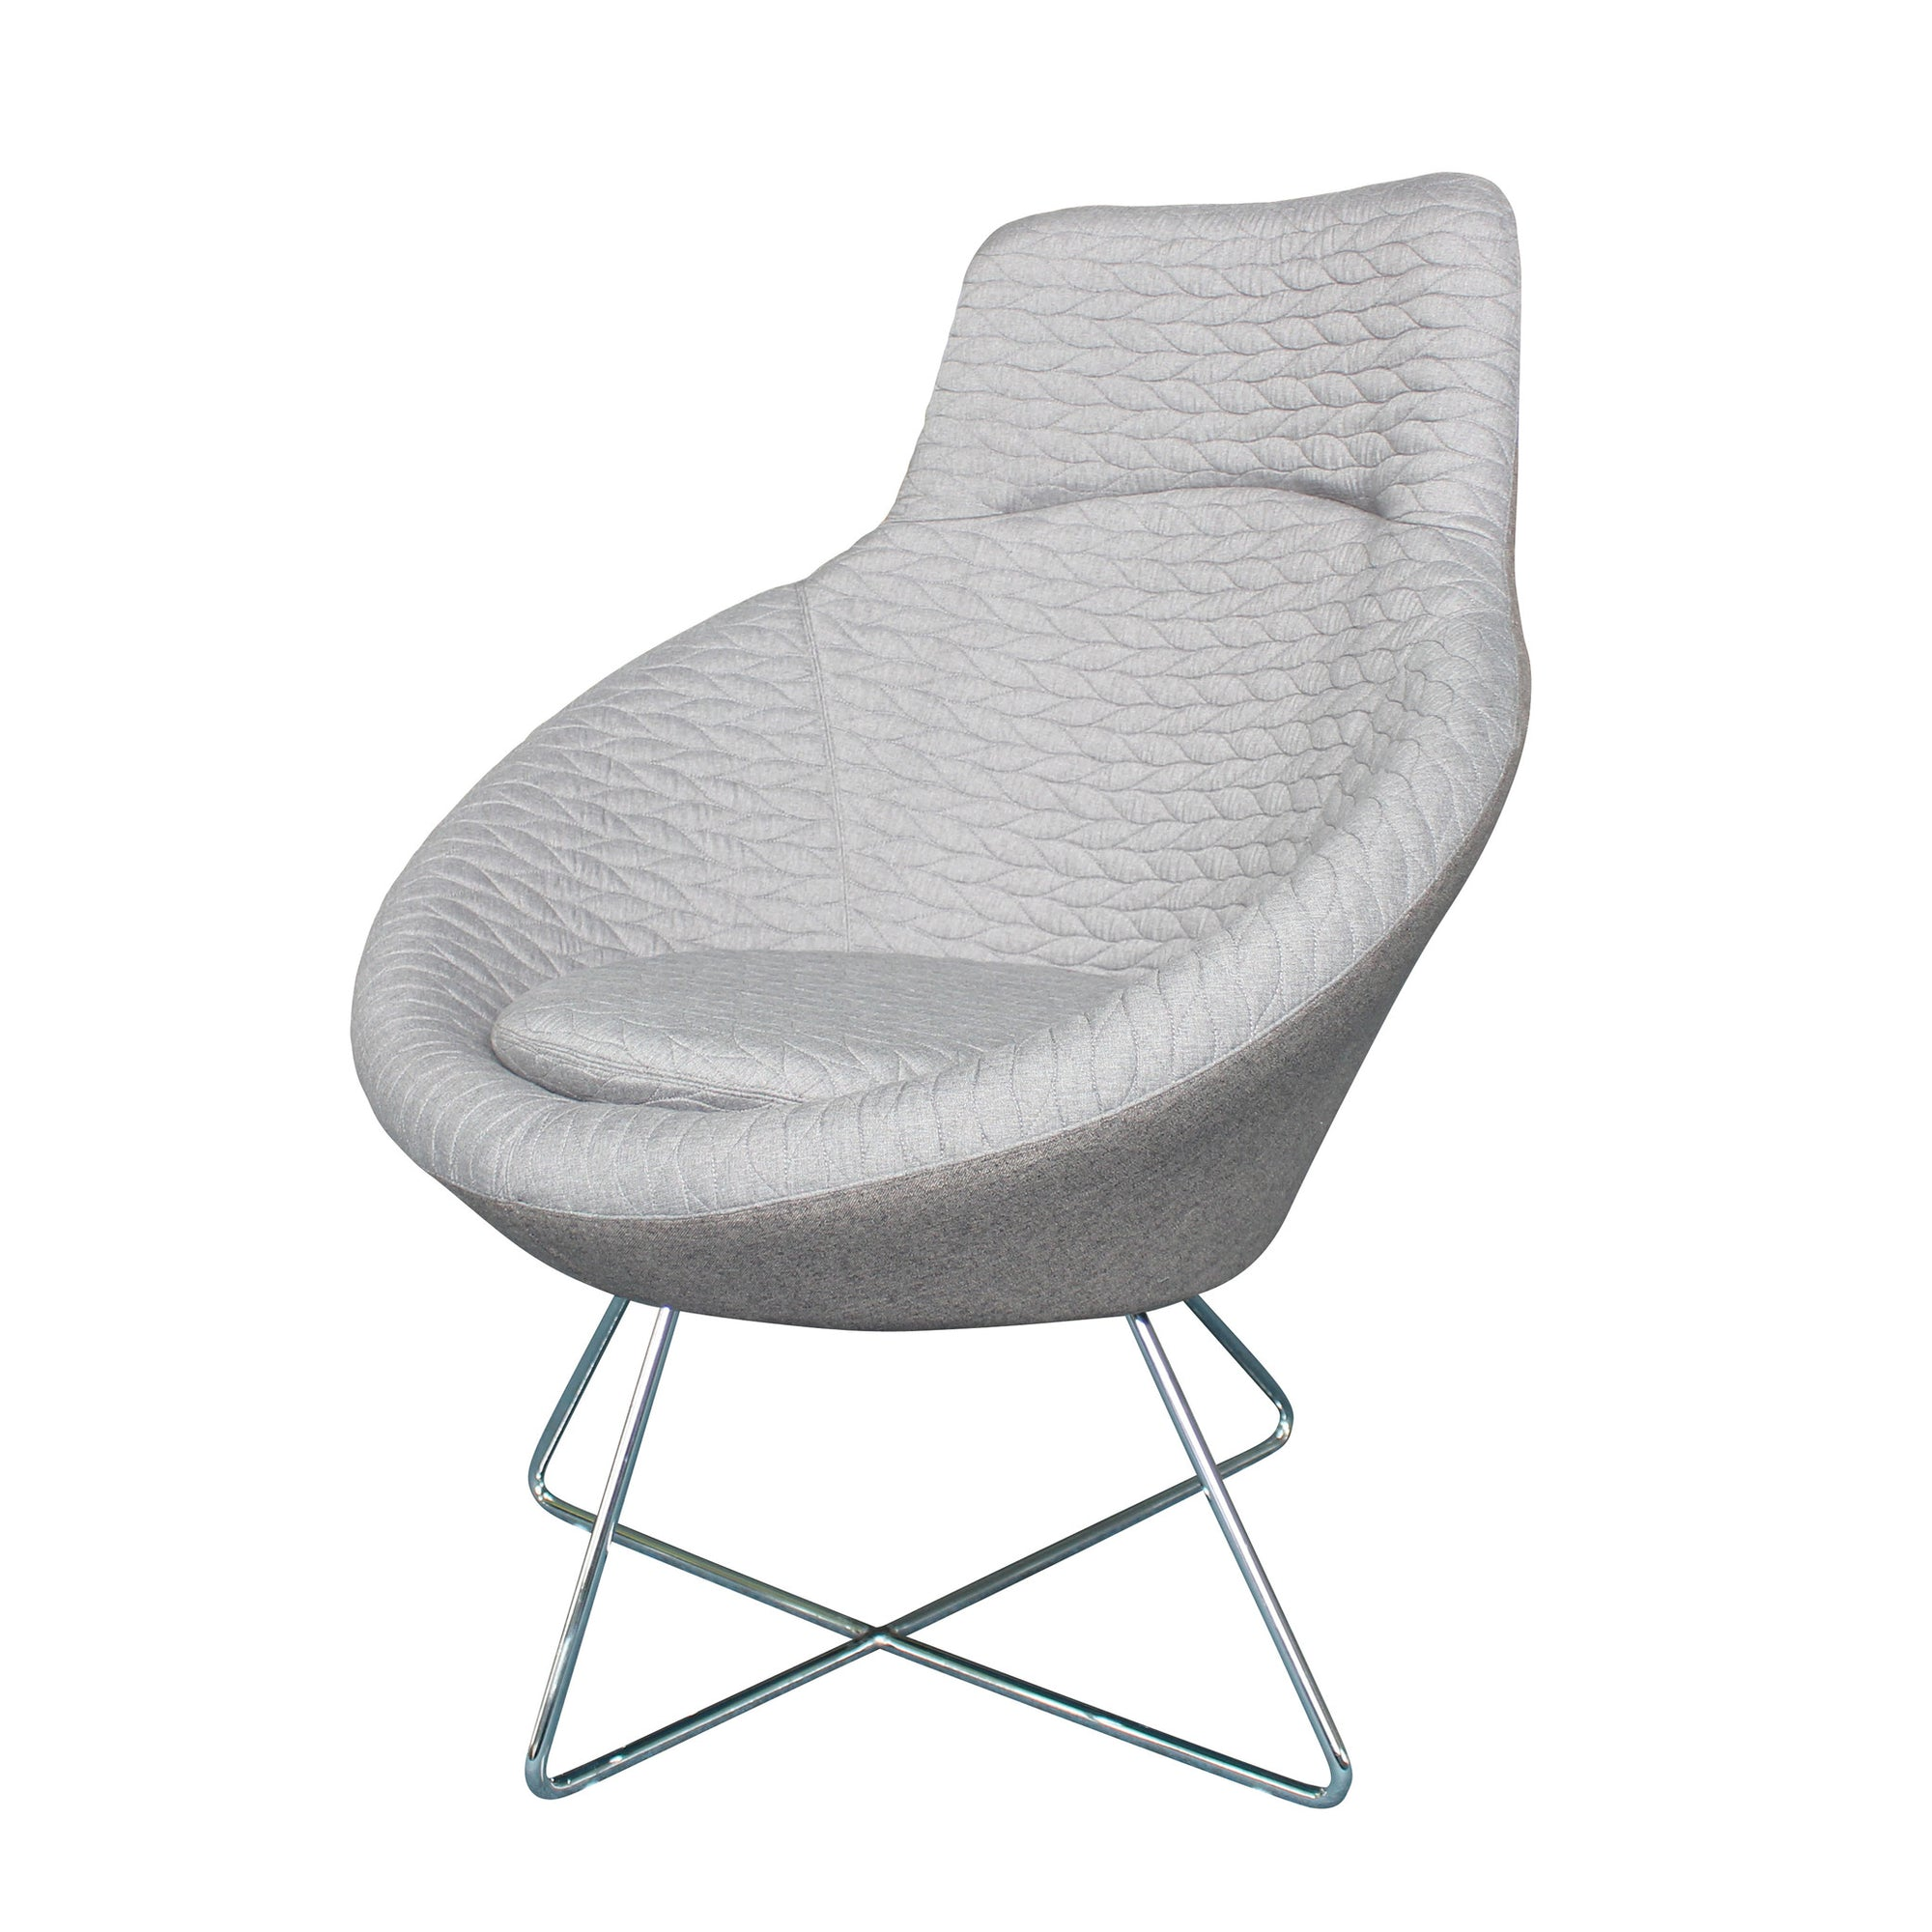 Lounge Chair  Leafe Lounge Chair Le0077Grey